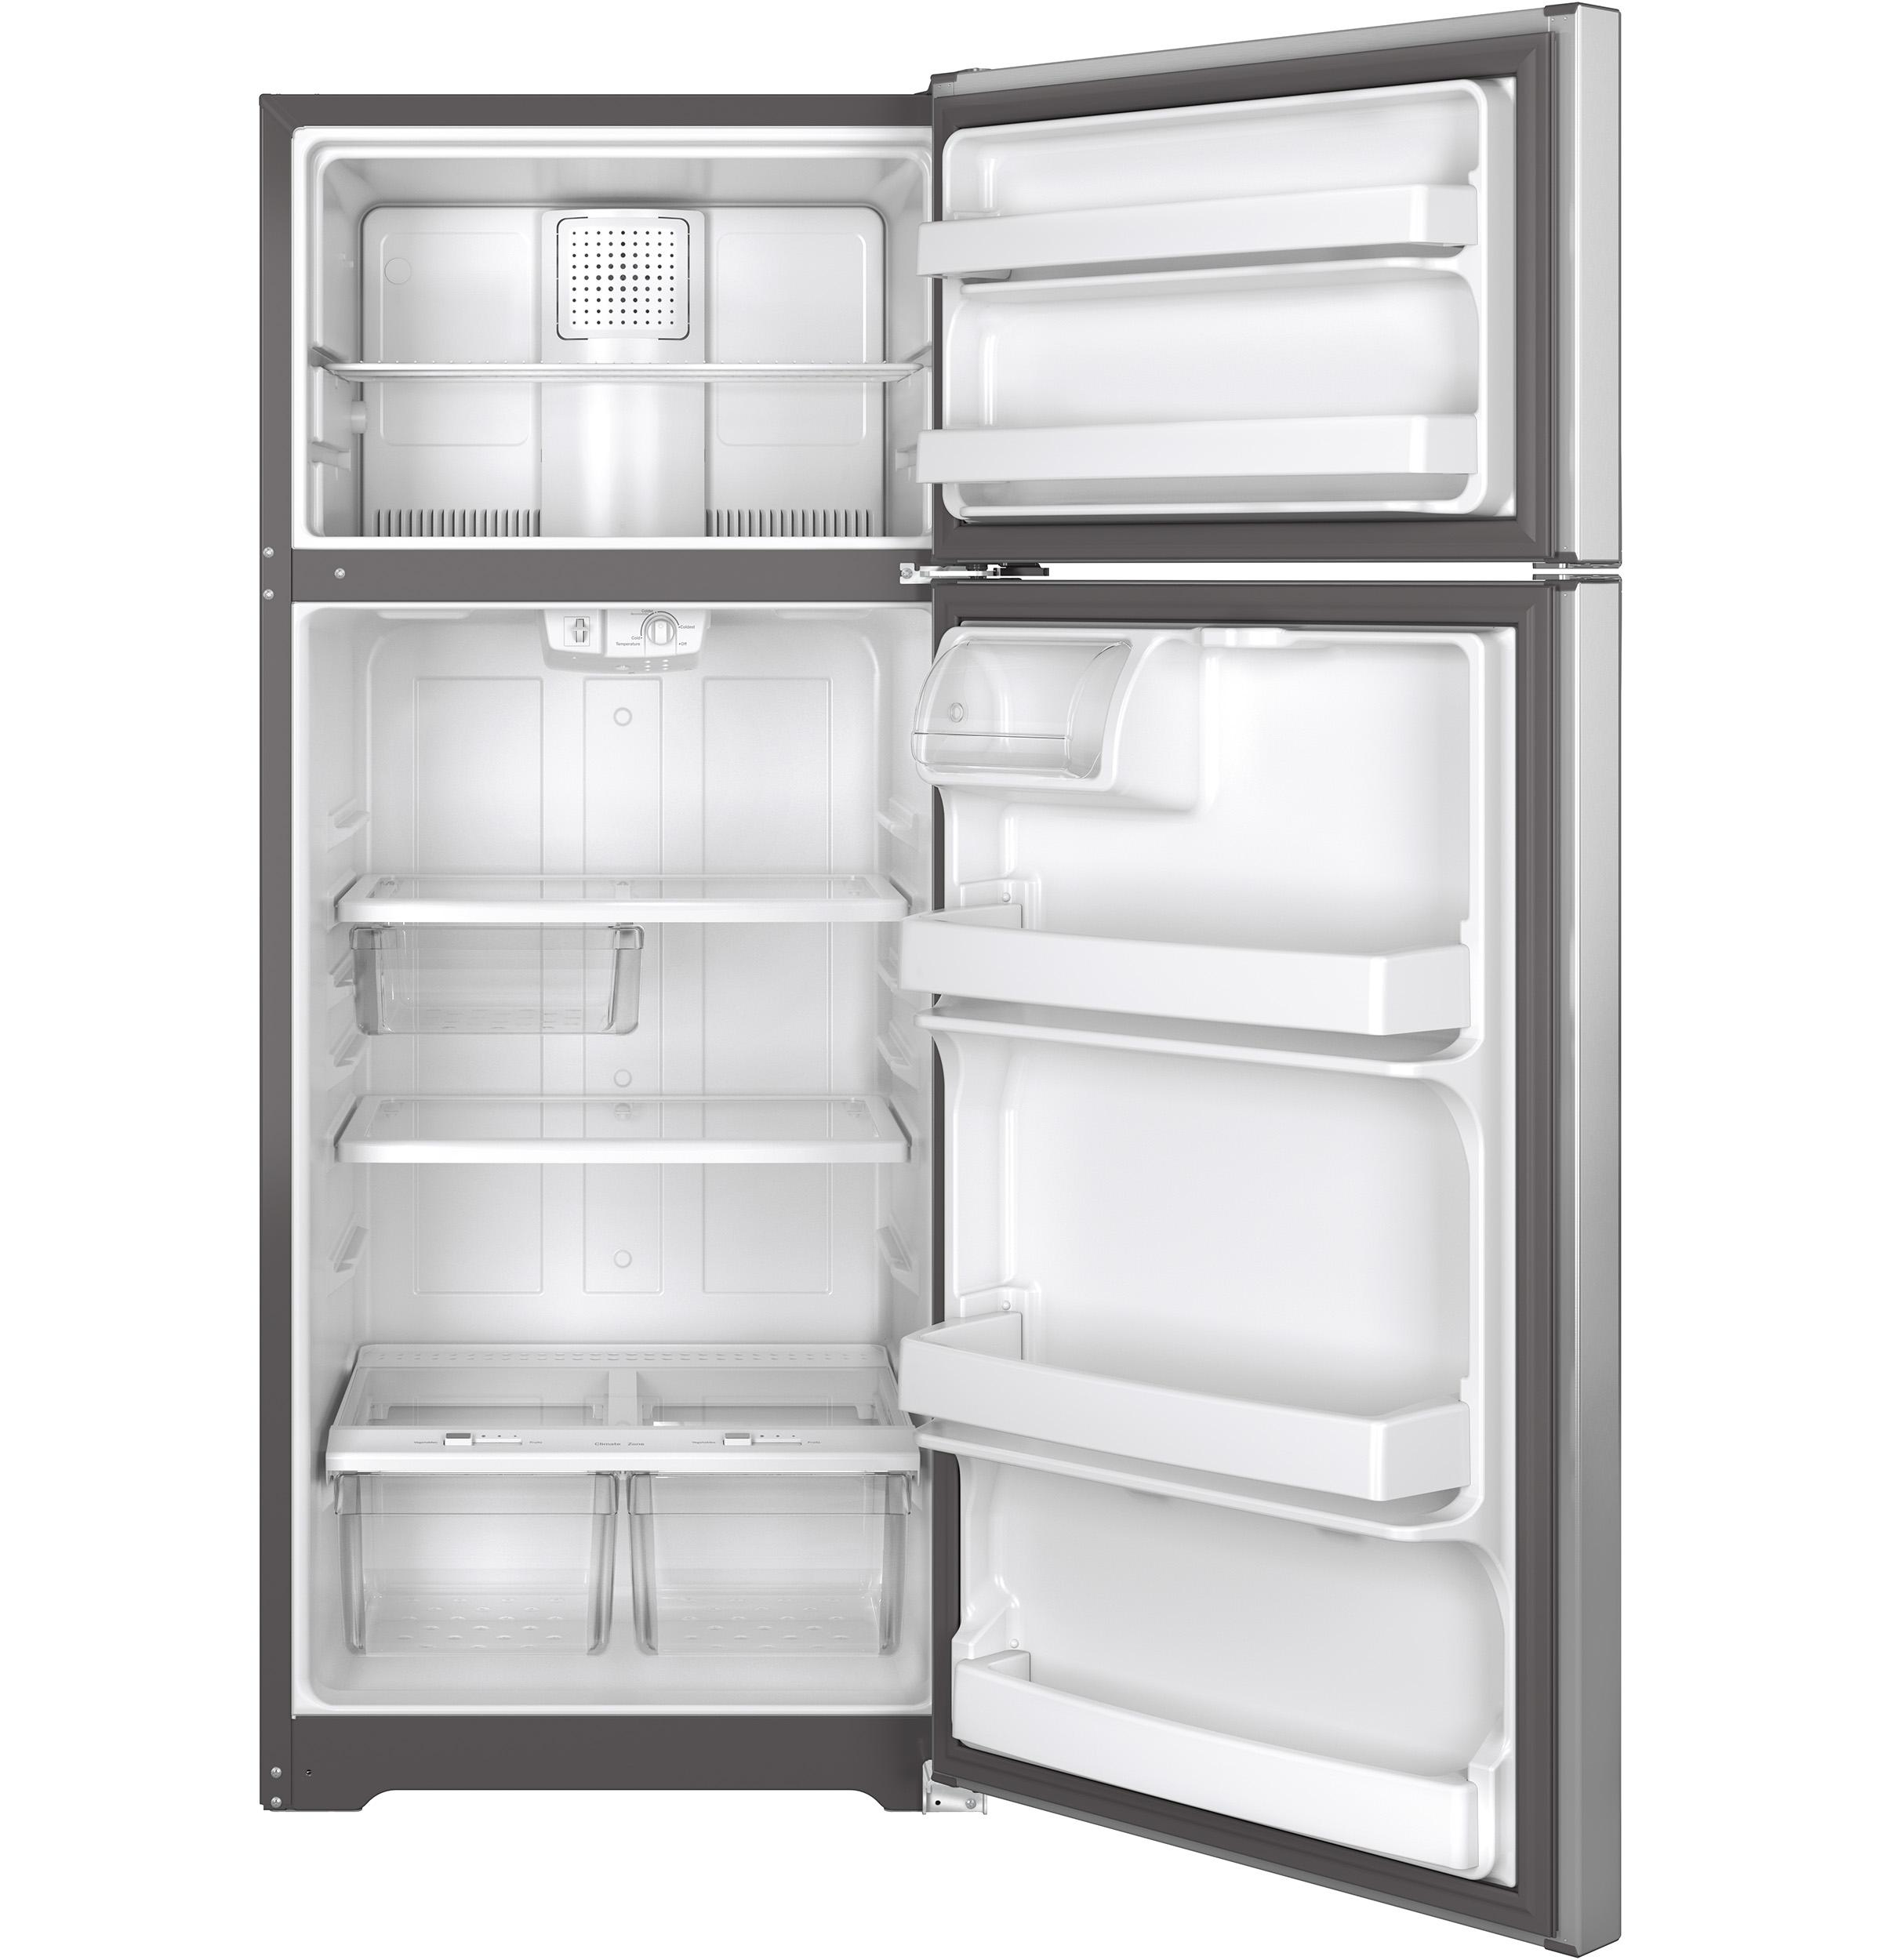 GE(R) ENERGY STAR(R) 17.5 Cu. Ft. Top-Freezer Refrigerator